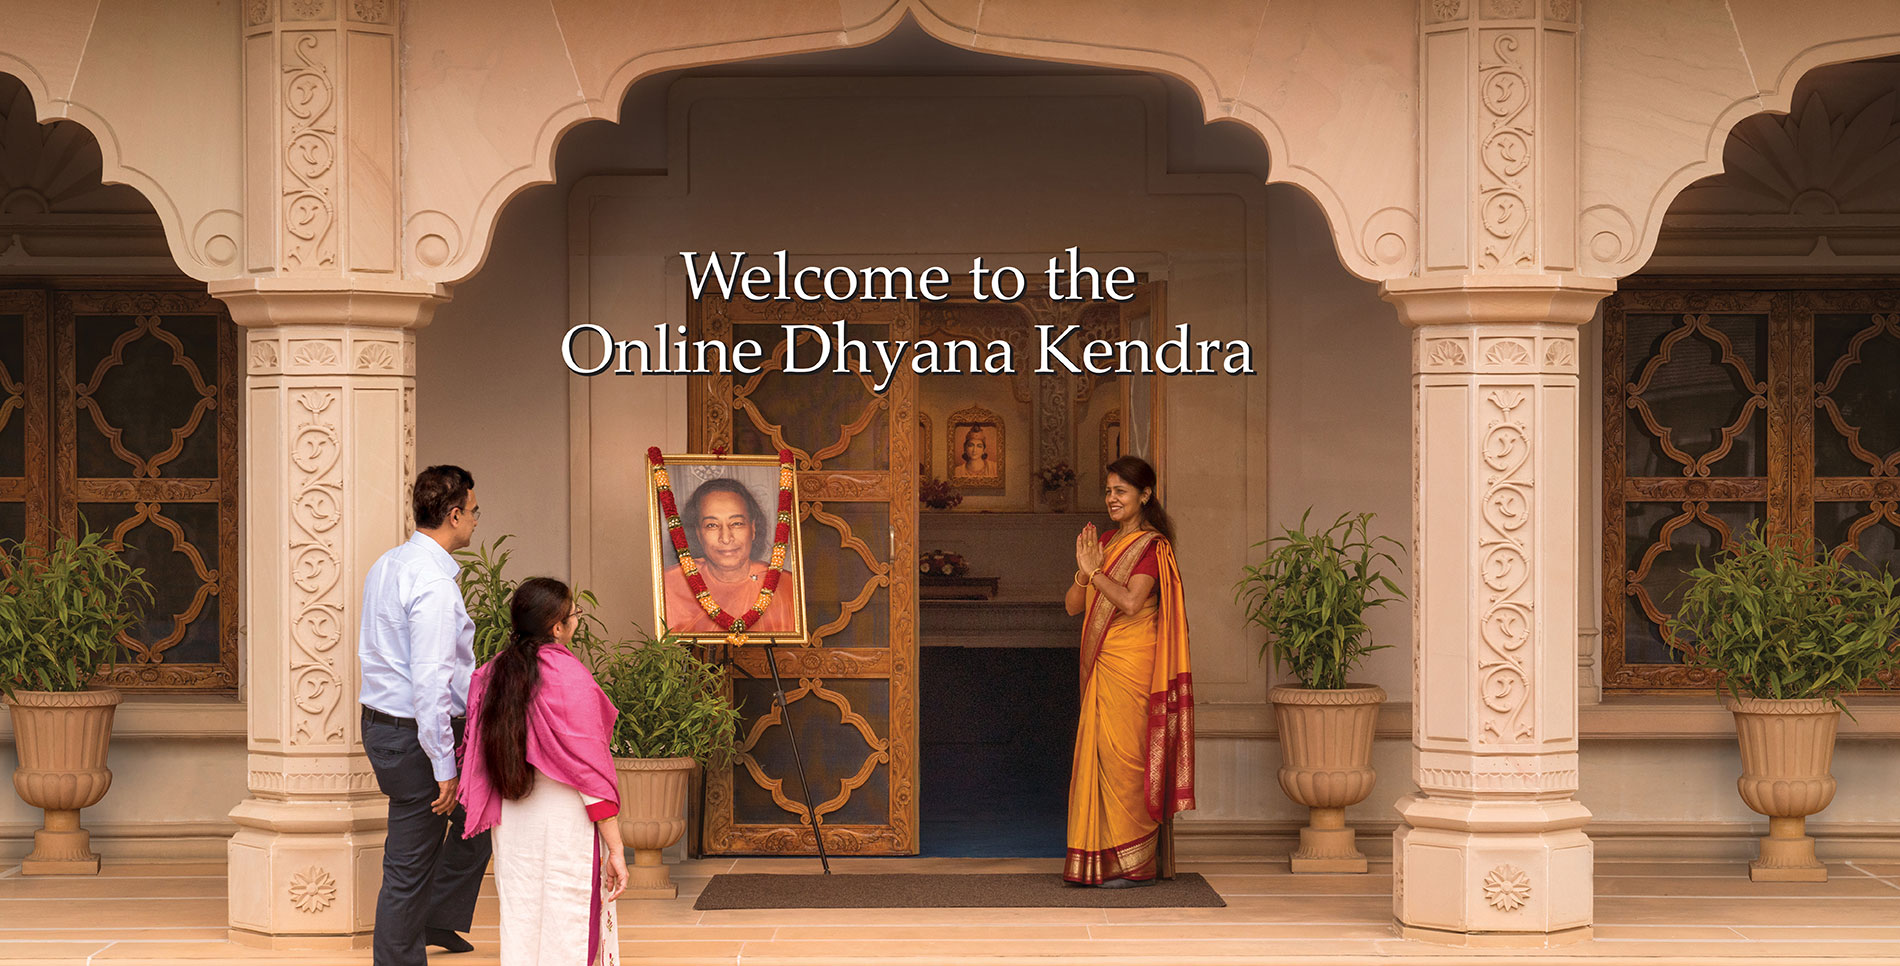 welcome to online dhyana kendra